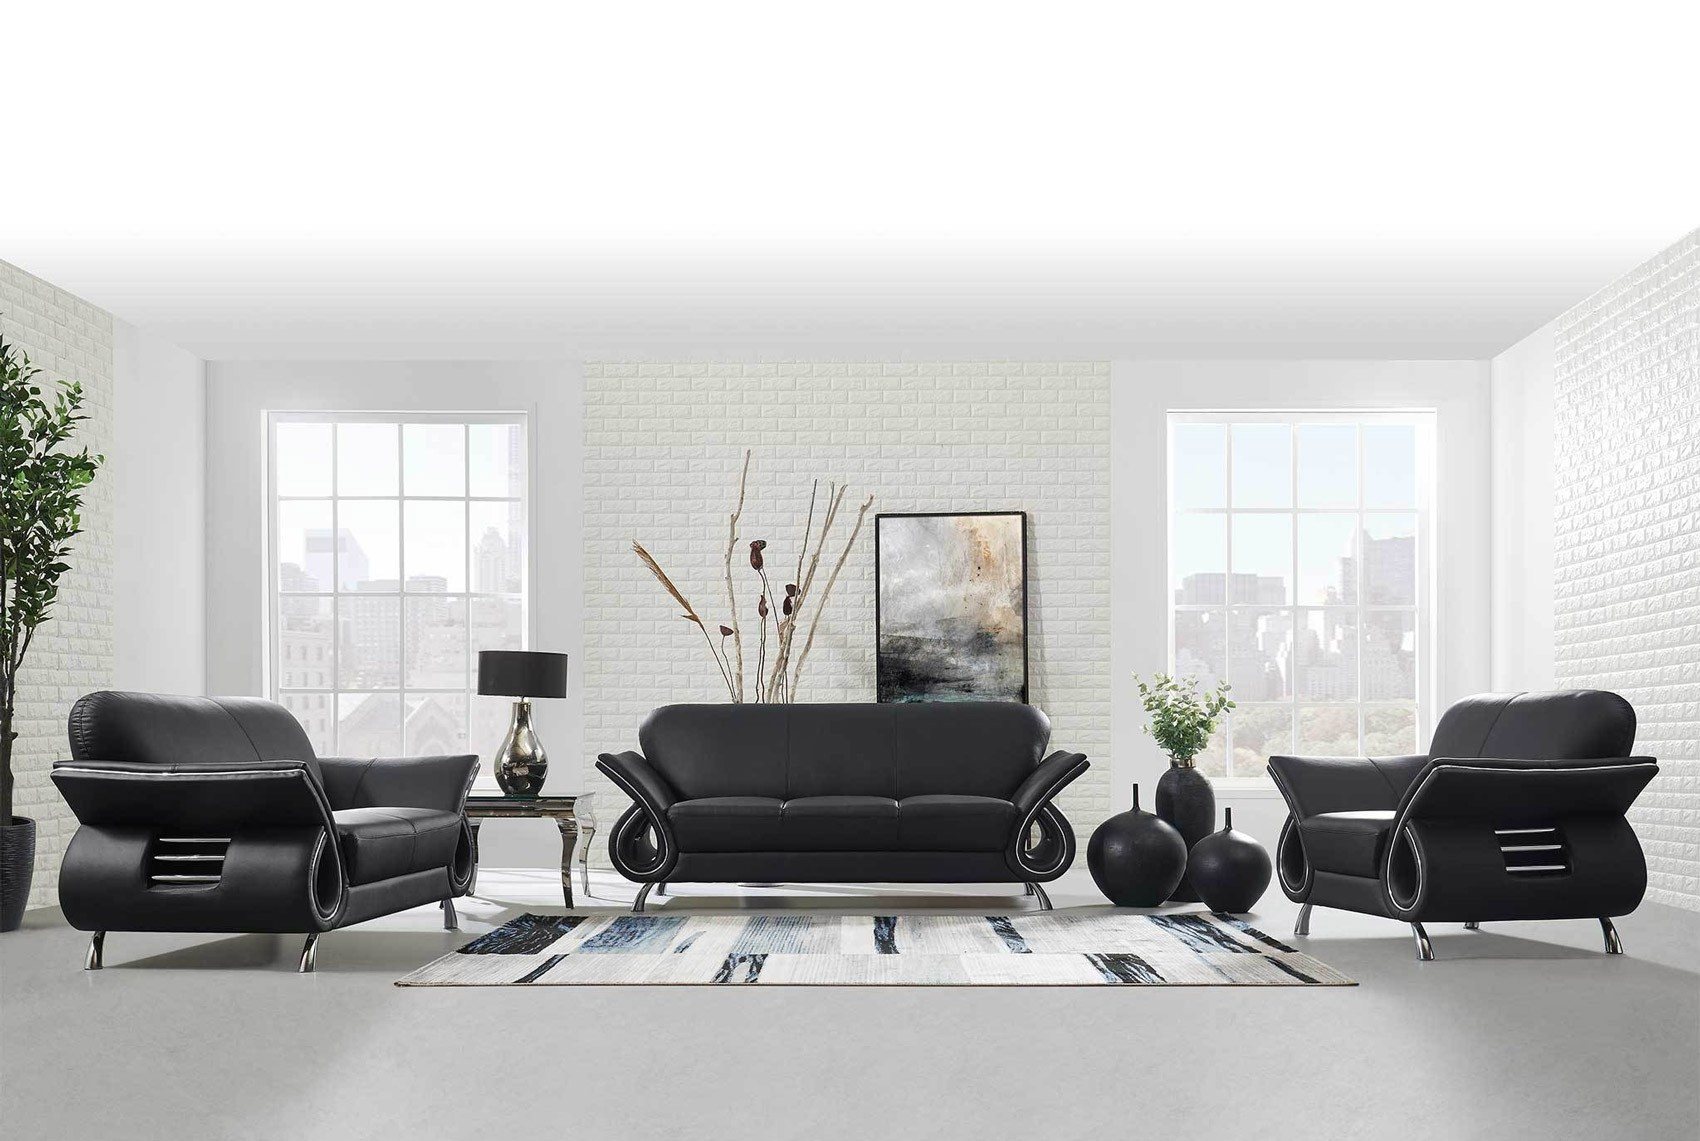 U559 Living Room Set in Black Leather by Global